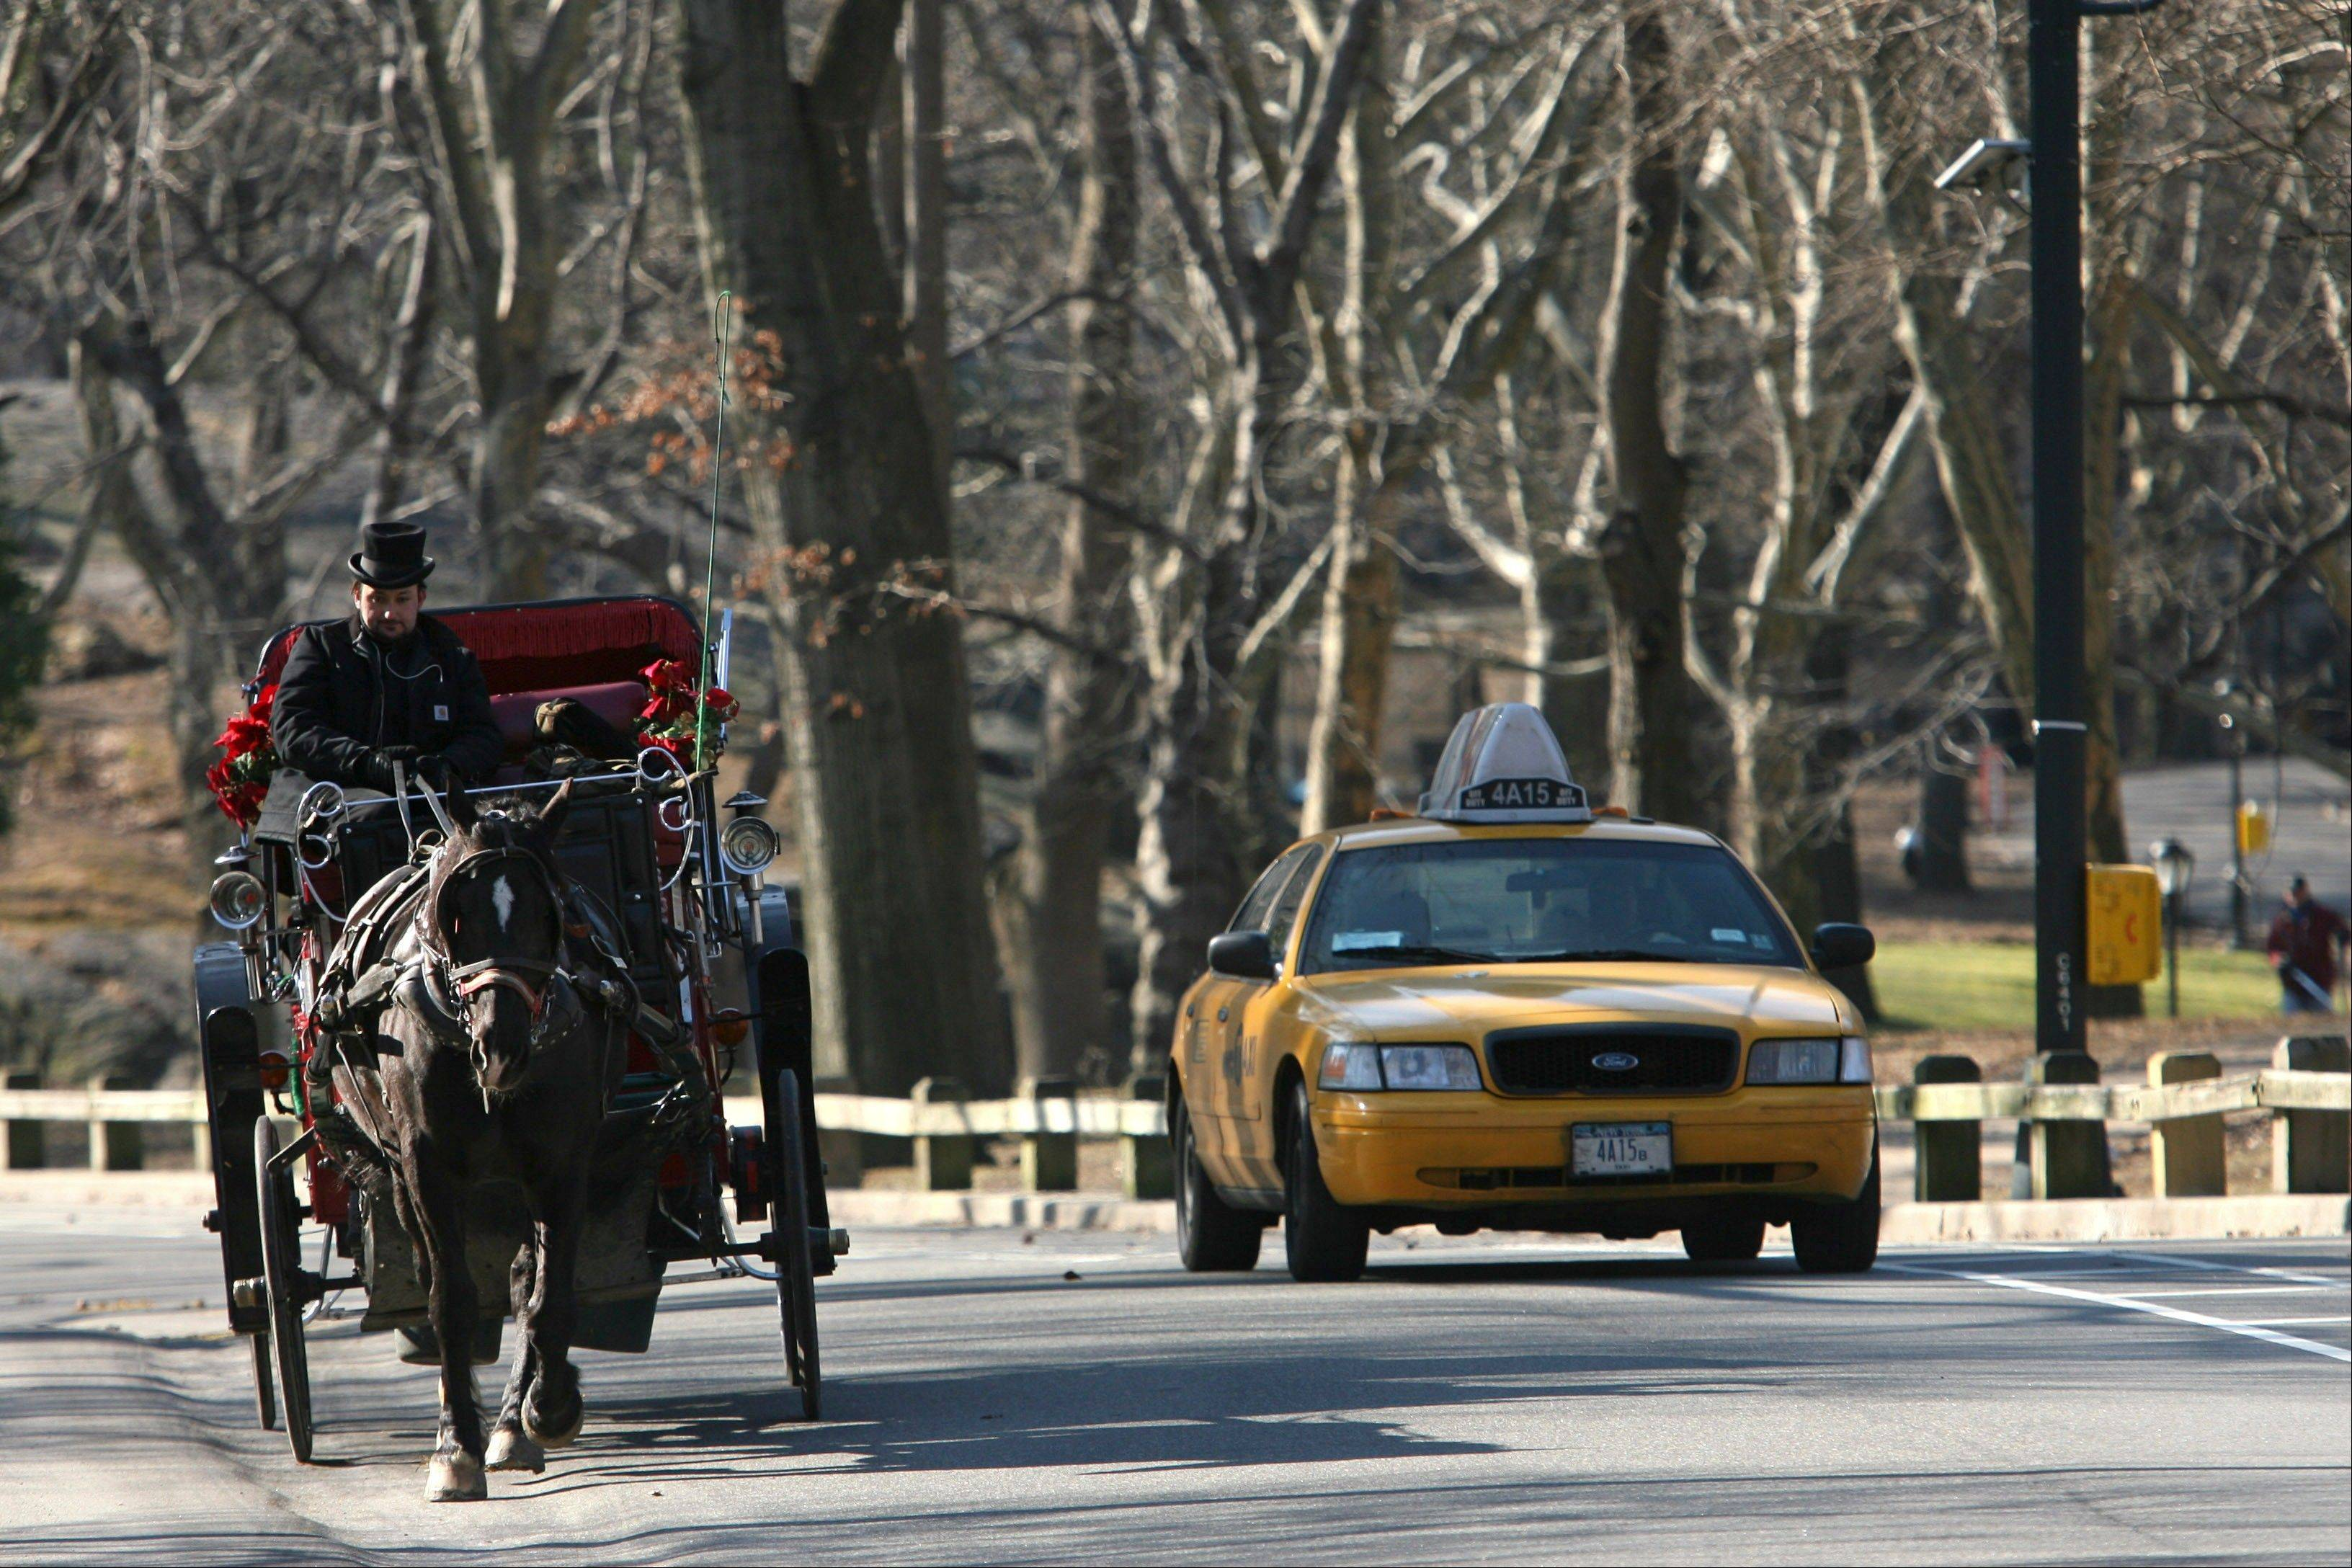 A horse-drawn carriage shares the road with a taxi in New York's Central Park. Bill de Blasio, who is leading in the polls as he is seeking the New York City Mayorís Office, supports a plan to replace the horses with old-timey electric cars hired to take tourists on slow-speed jaunts around Central Park.